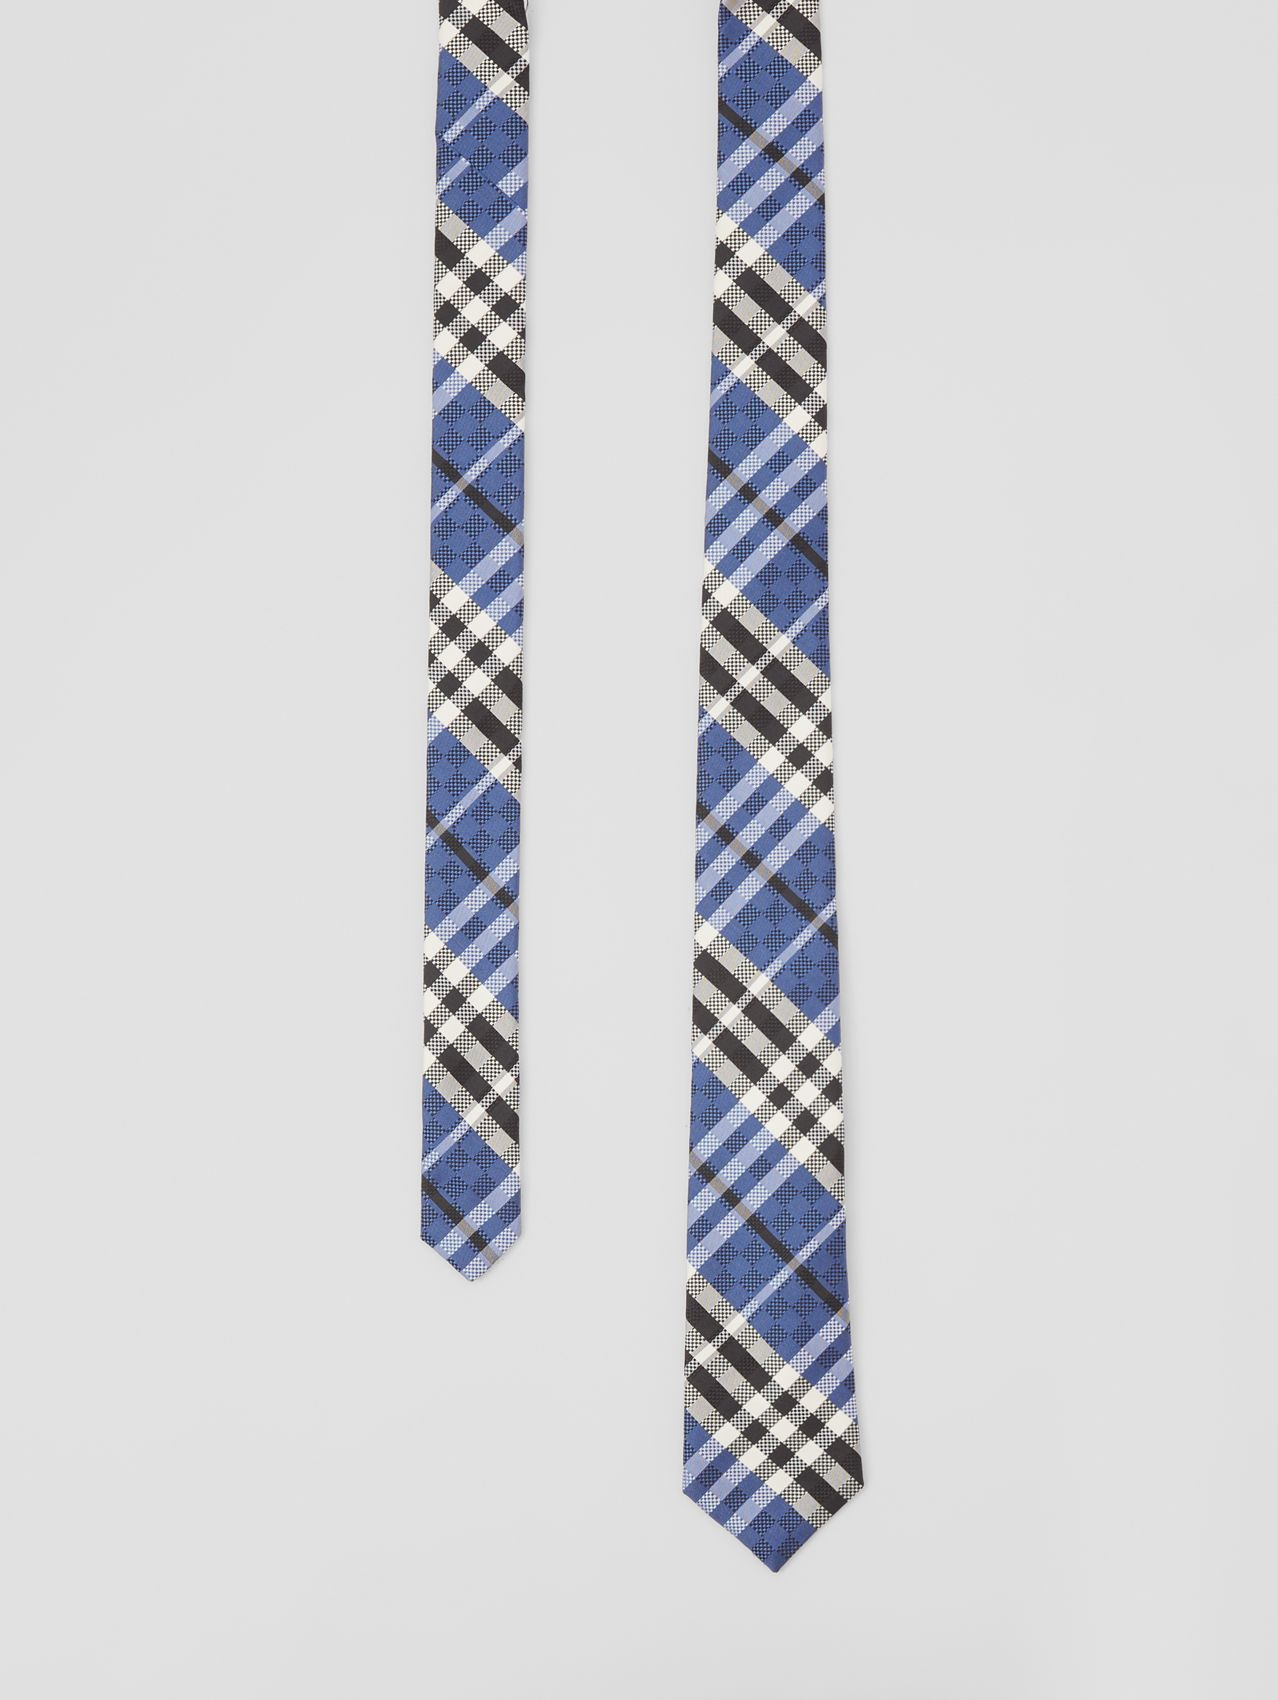 Modern Cut Check Silk Jacquard Tie in Ink Navy